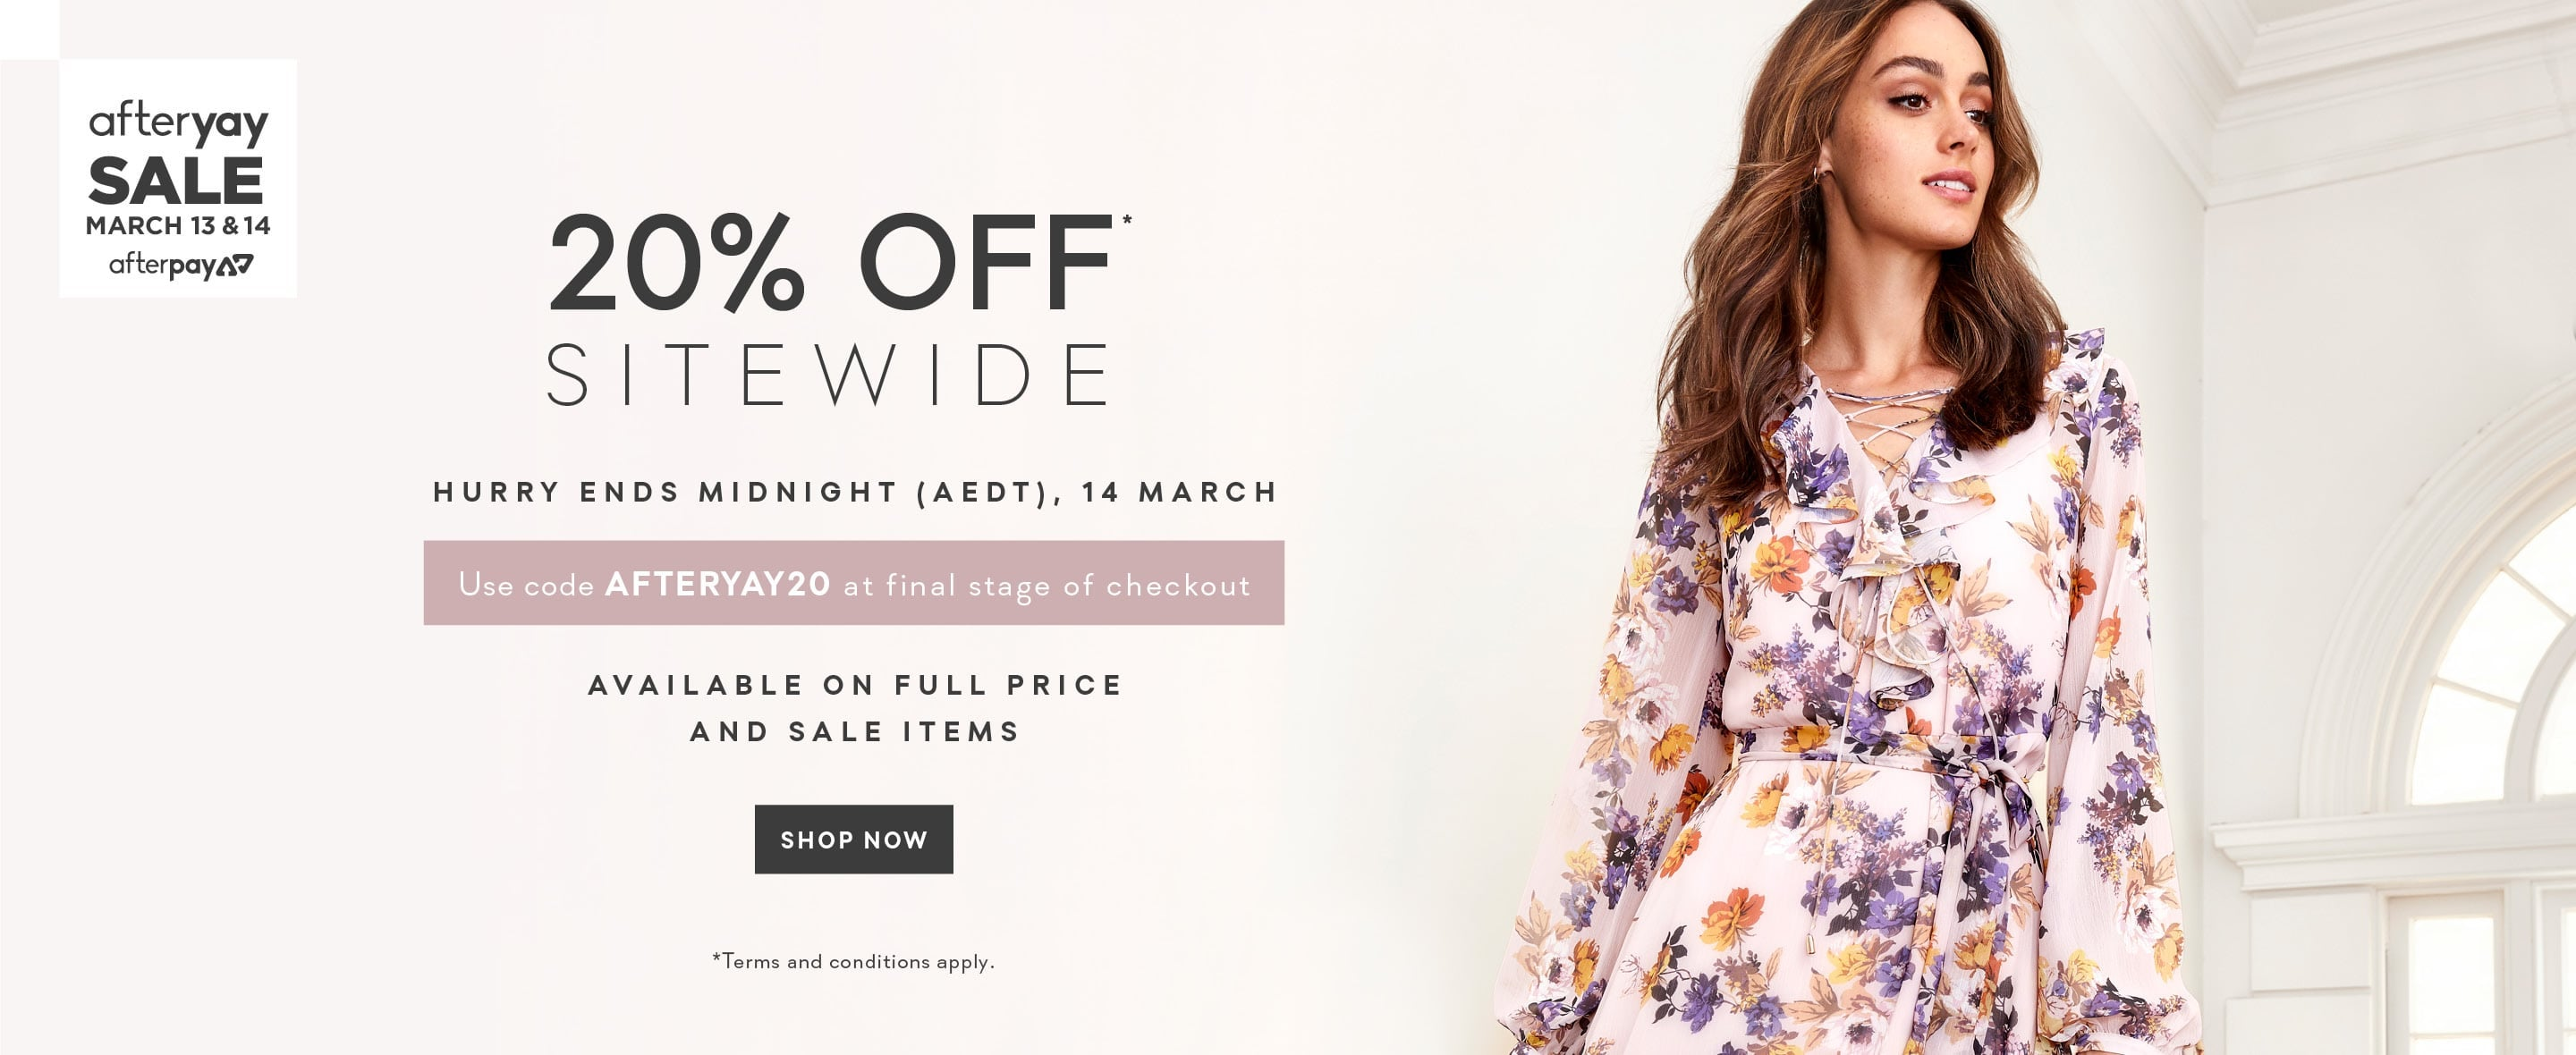 AfterYAY Sale 20% Off Sitewide